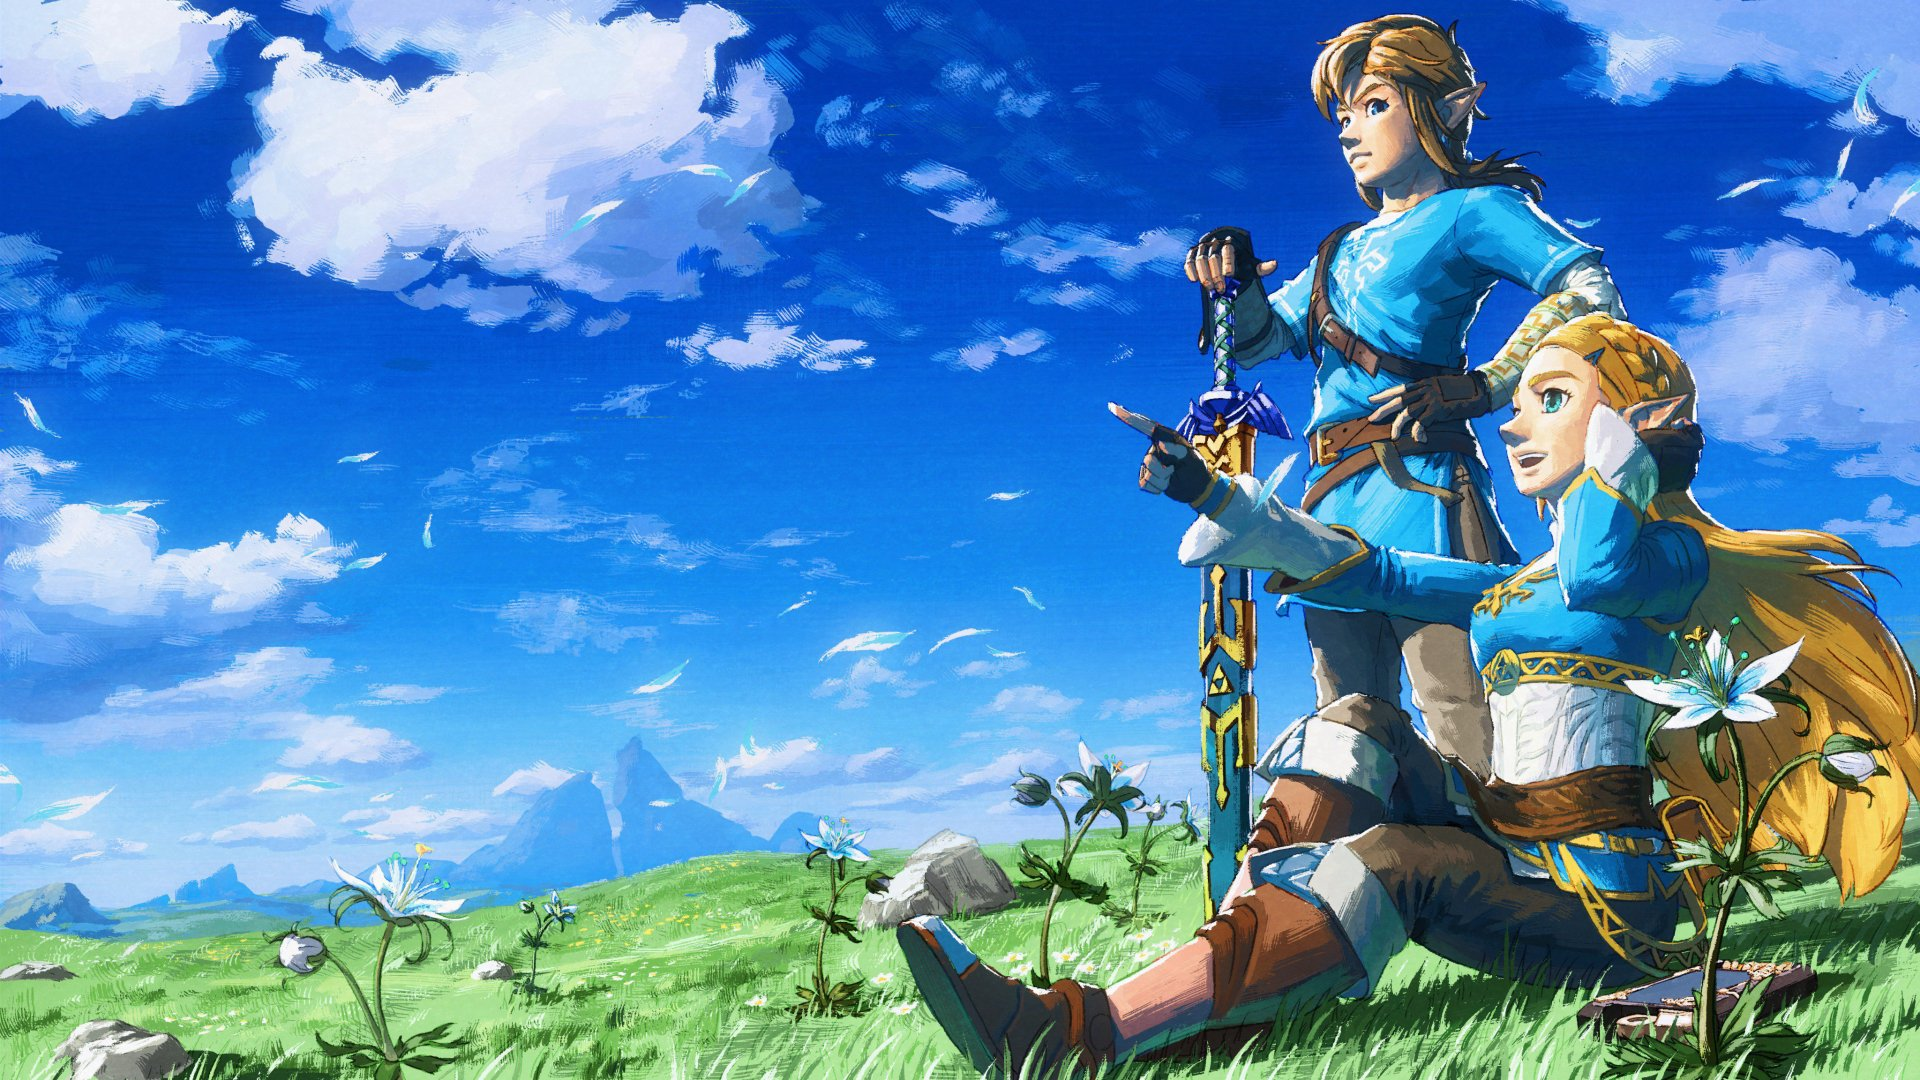 Videospel - The Legend of Zelda: Breath of the Wild  Link Zelda Wallpaper